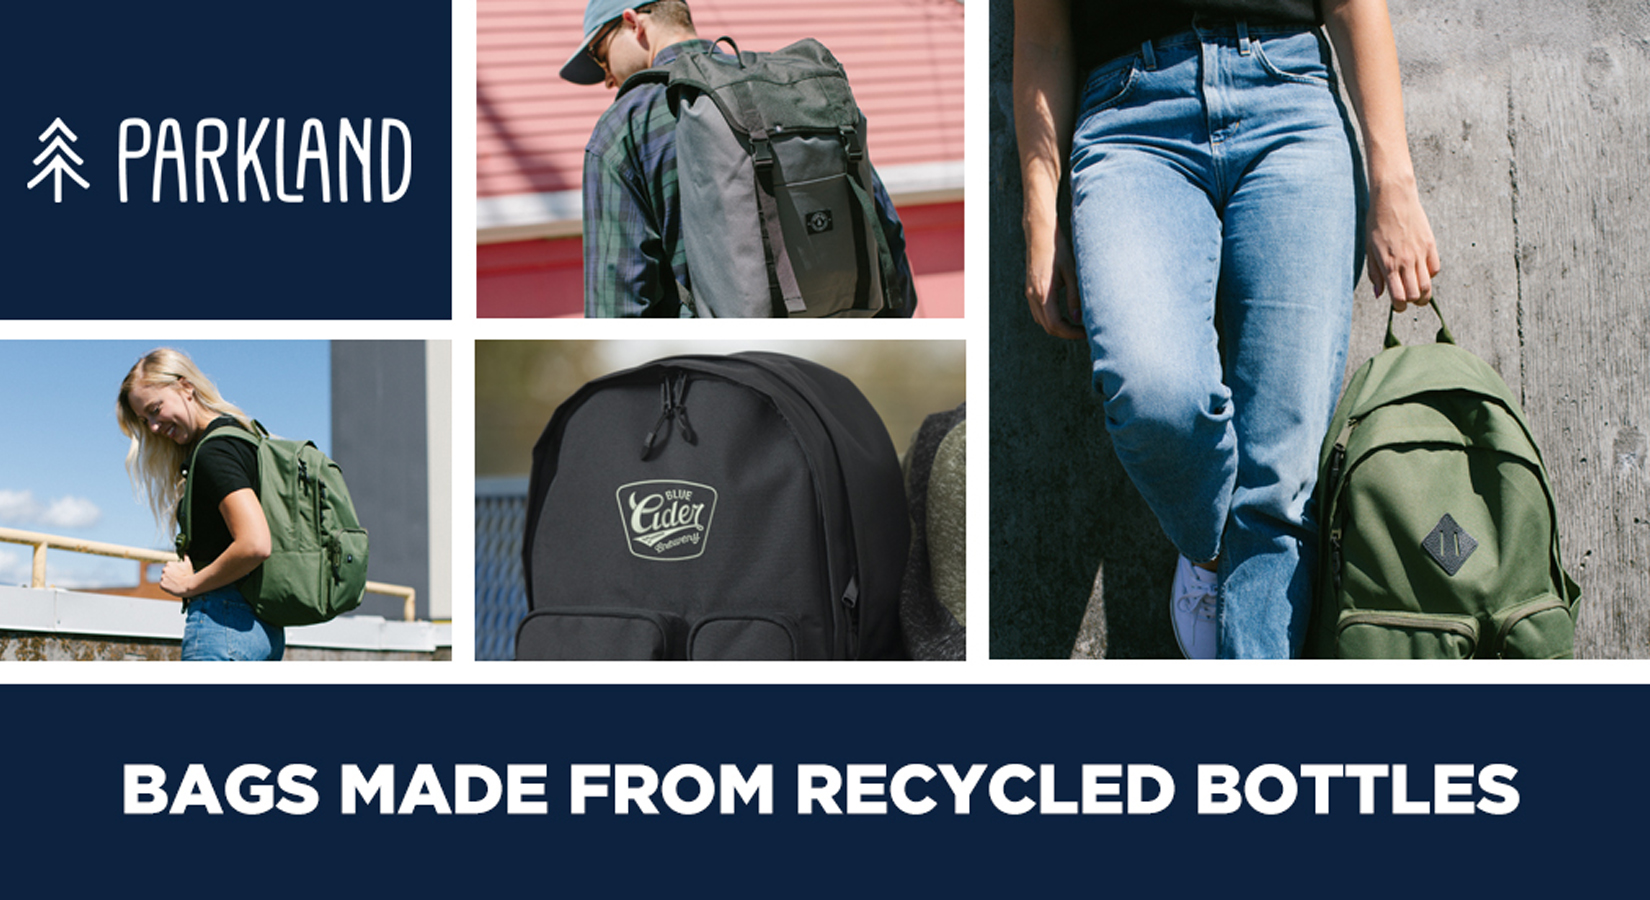 Parkland Design & Manufacturing: Bags Made From 100% Recycled Water Bottles